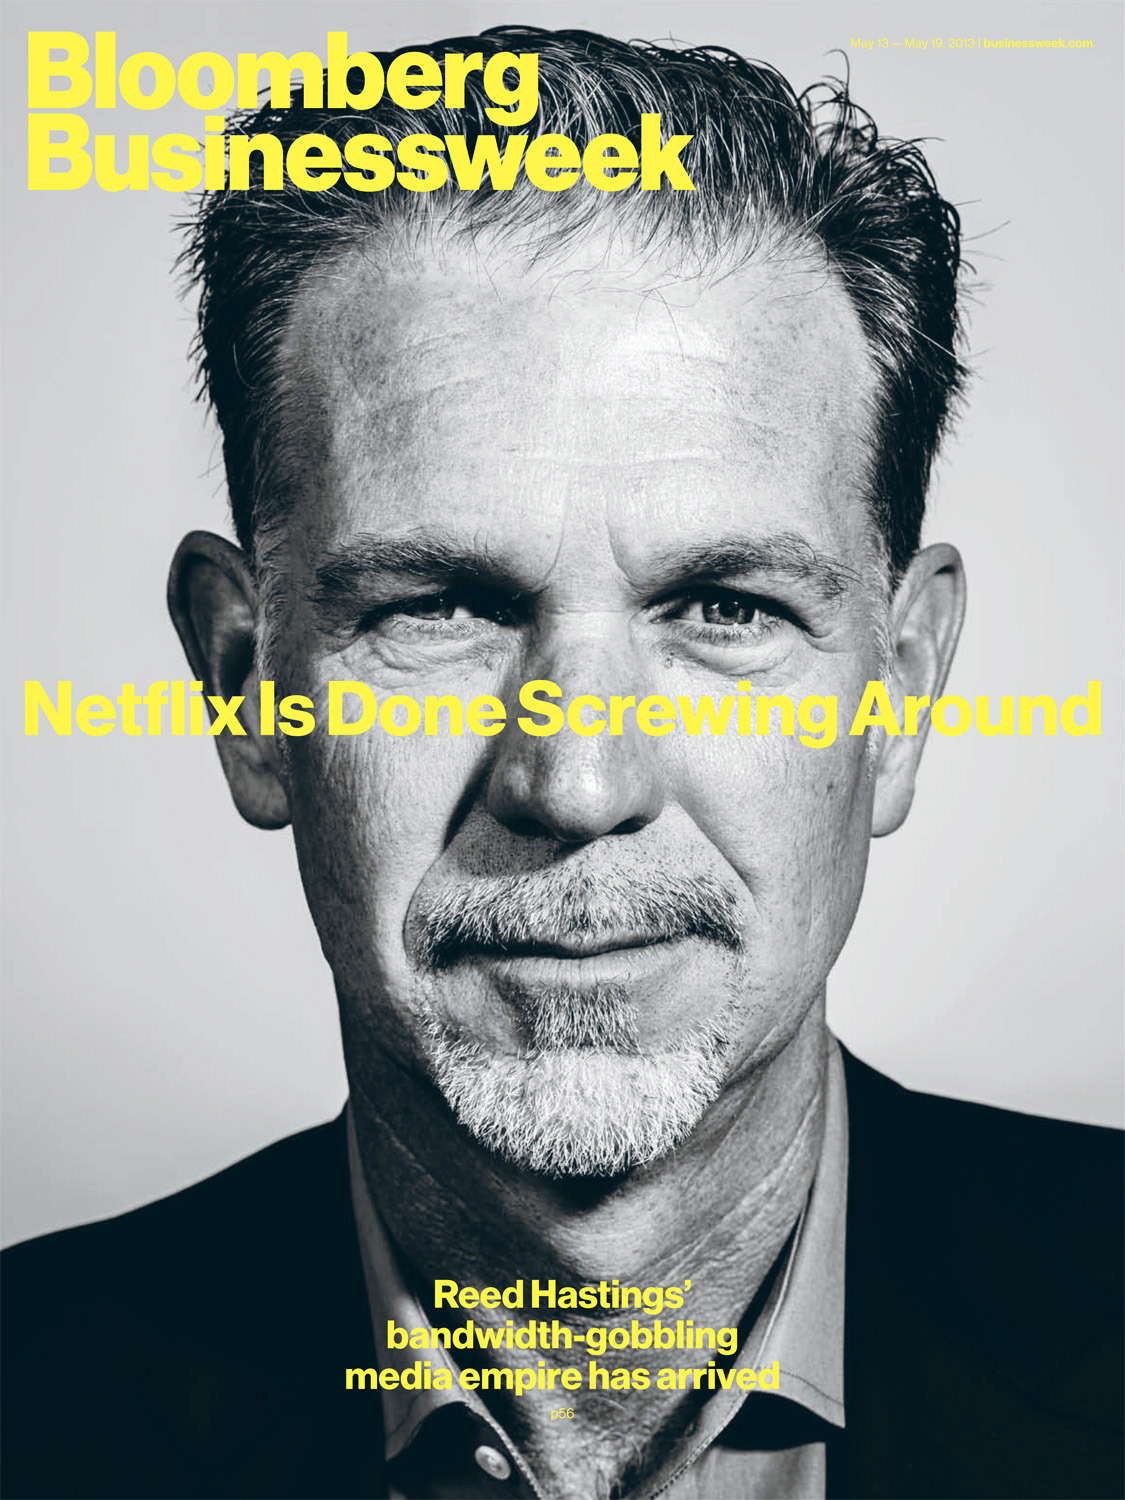 Reed Hastings, CEO and co-founder of Netflix, photographed for the cover of Bloomberg Businessweek, out today.